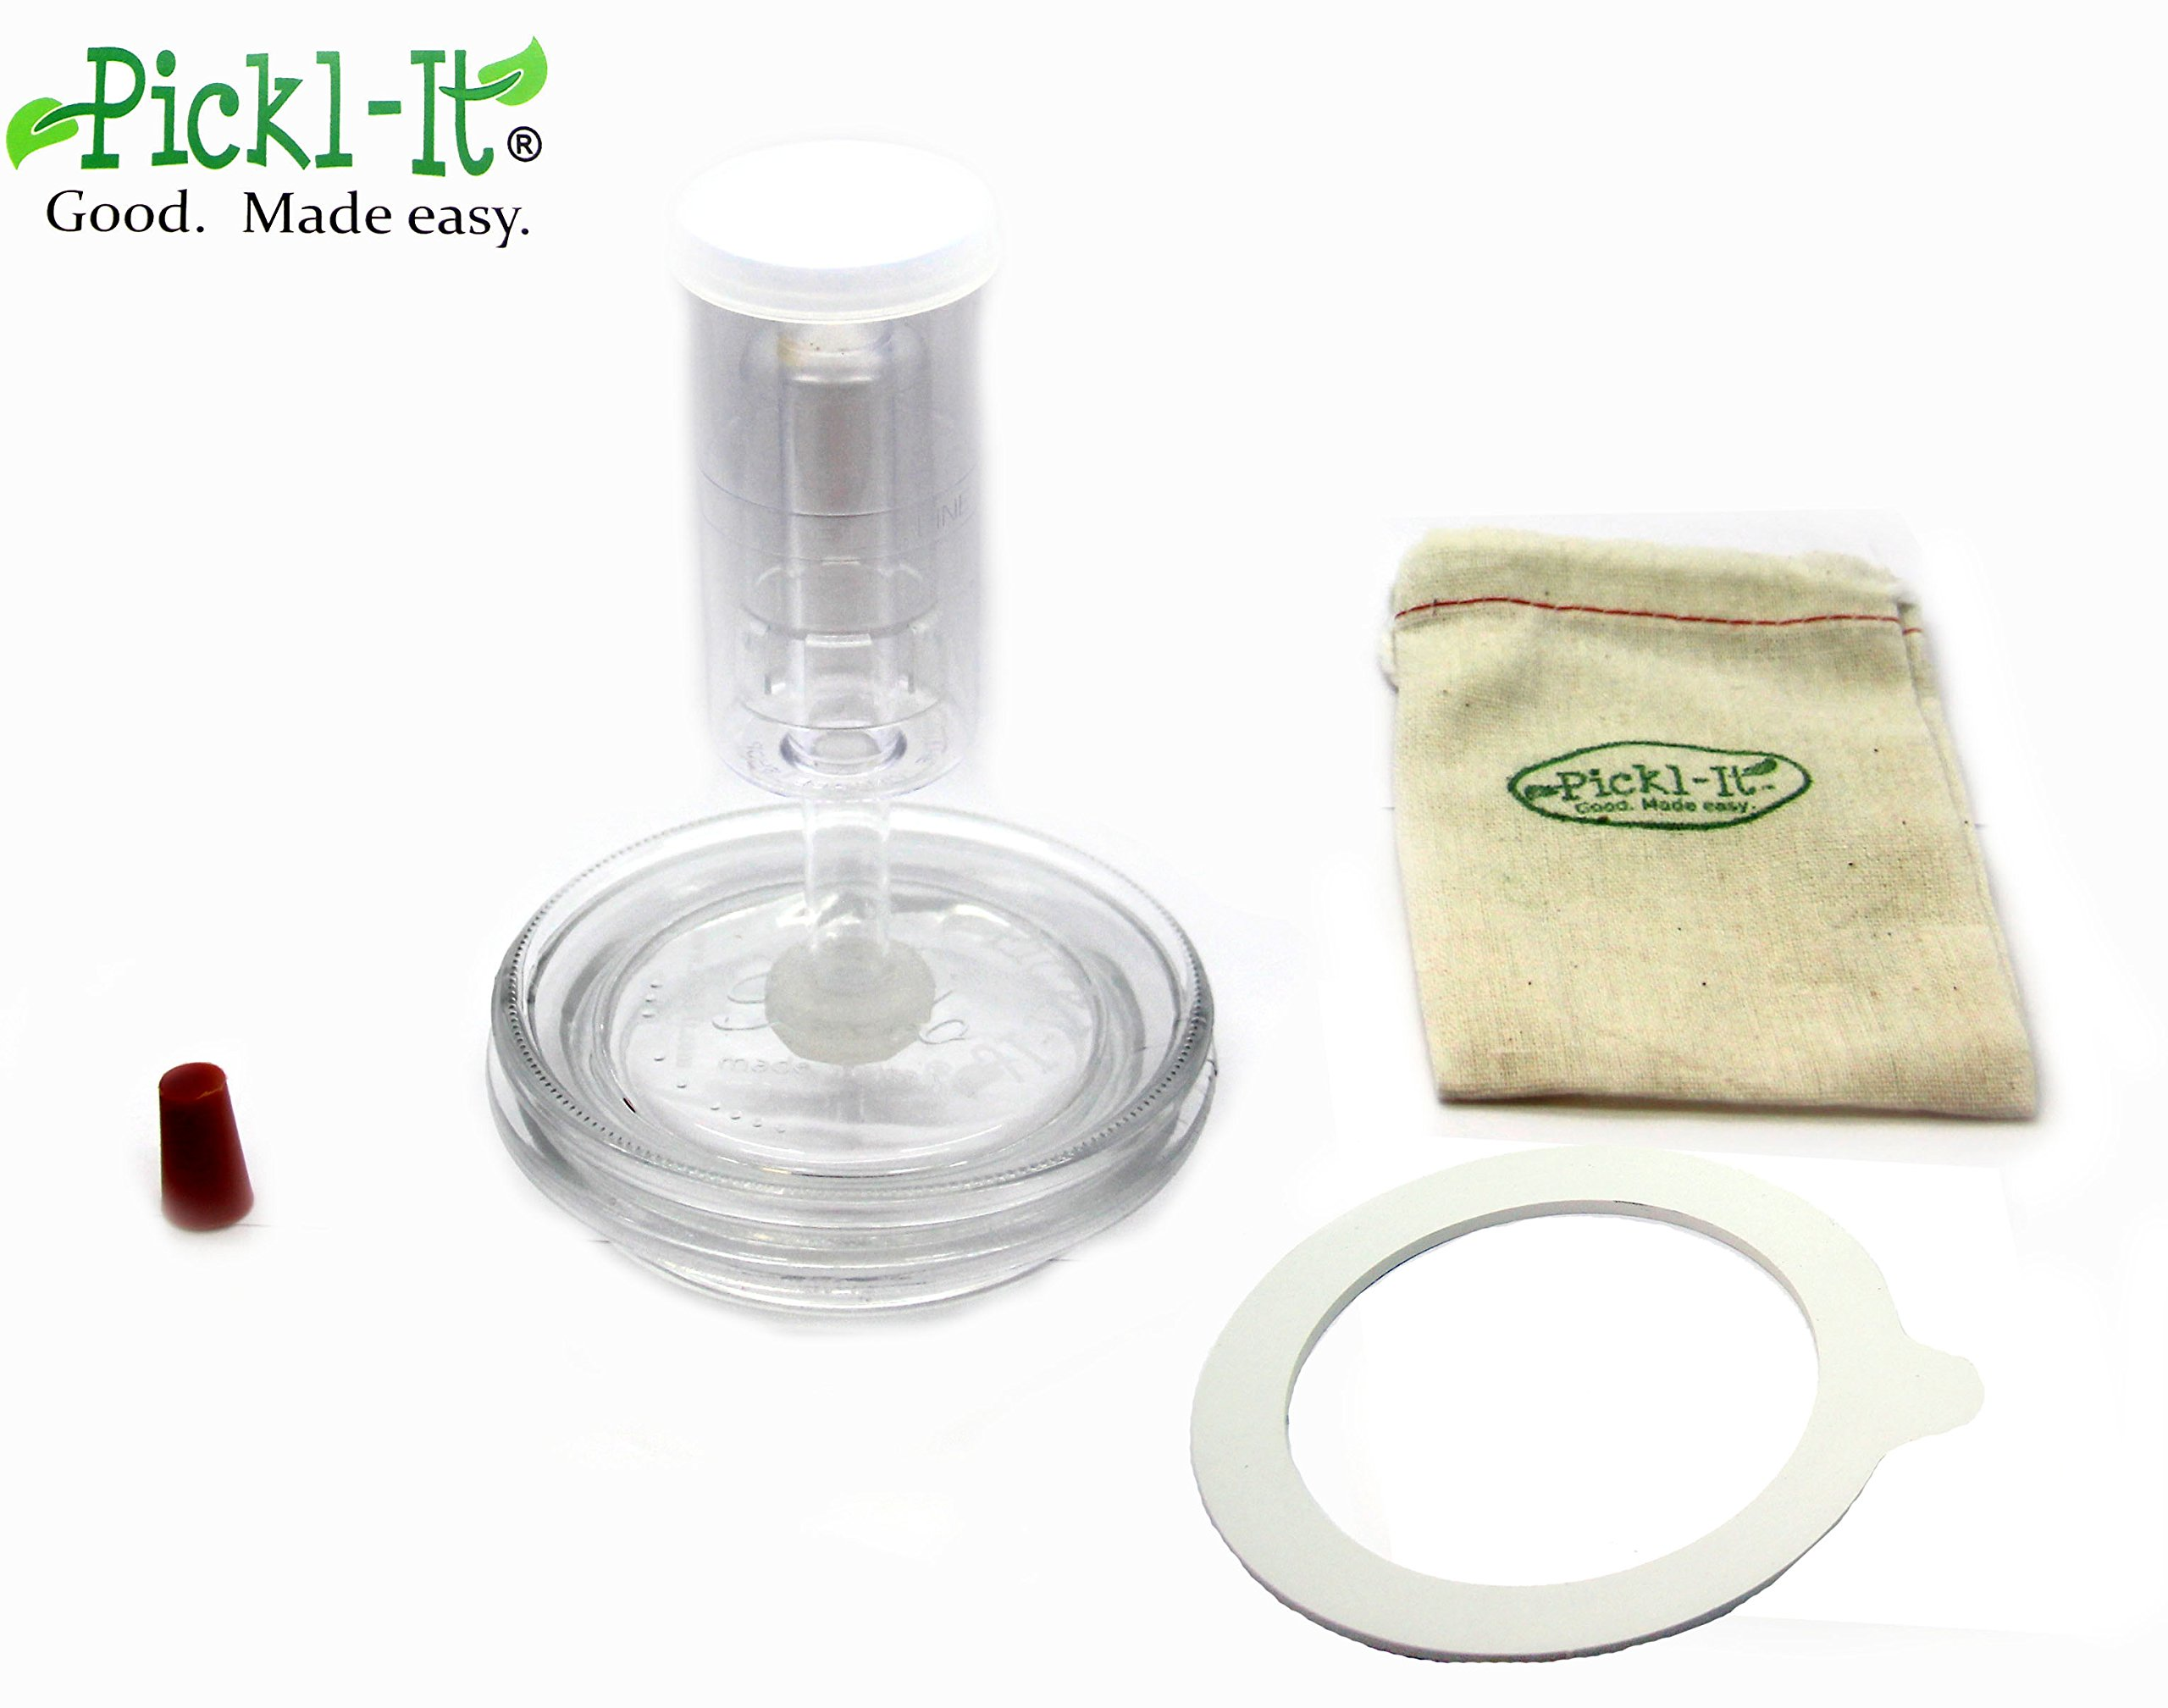 Pickl-It Original Fermentation Lid Kit Convert 'Fido' Jars For Anaerobic Pickling